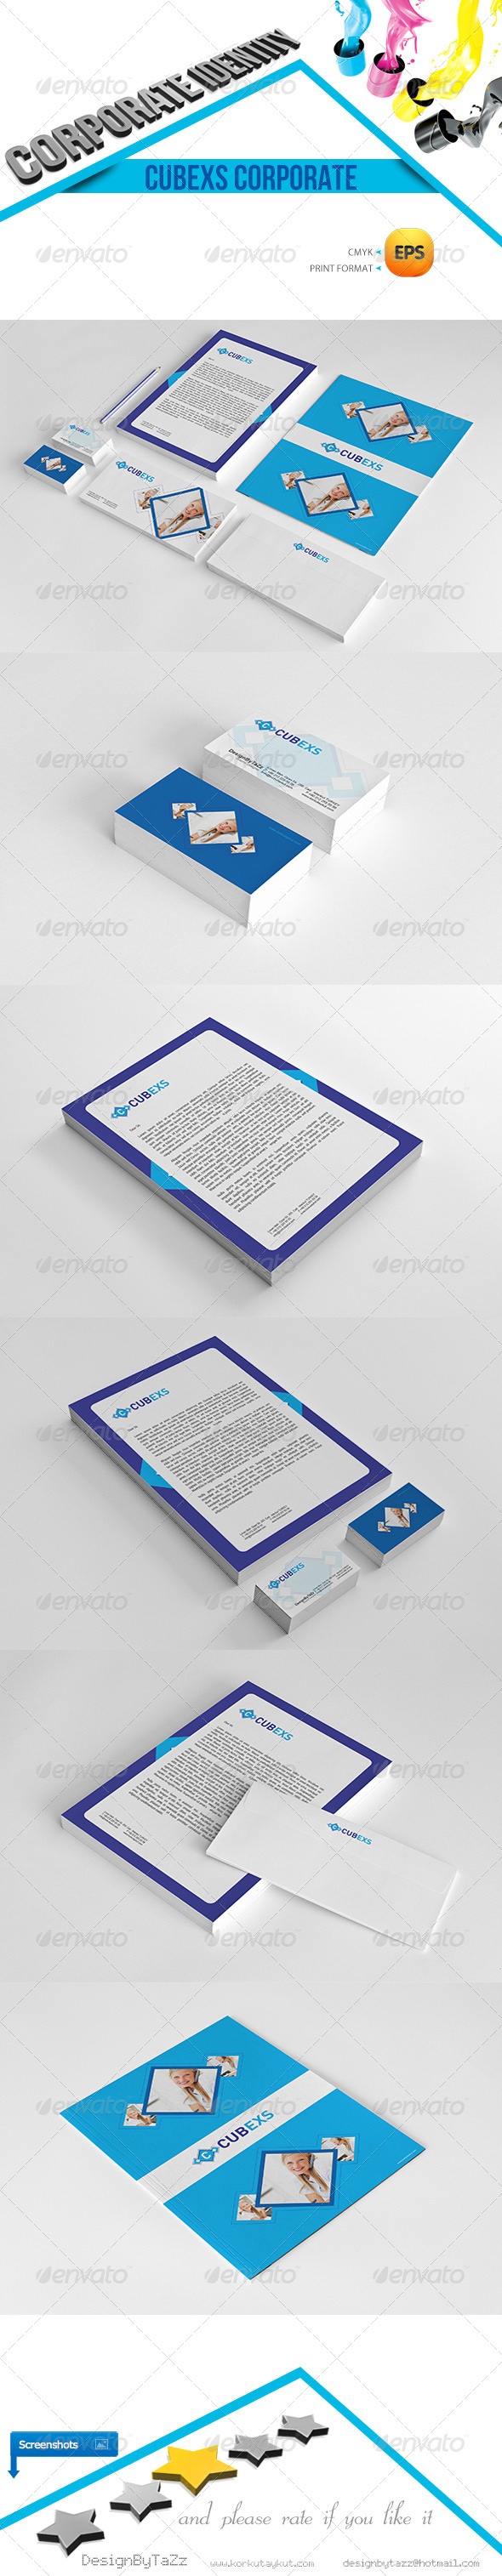 GraphicRiver Cubexs Corporate Identity Package 4729416